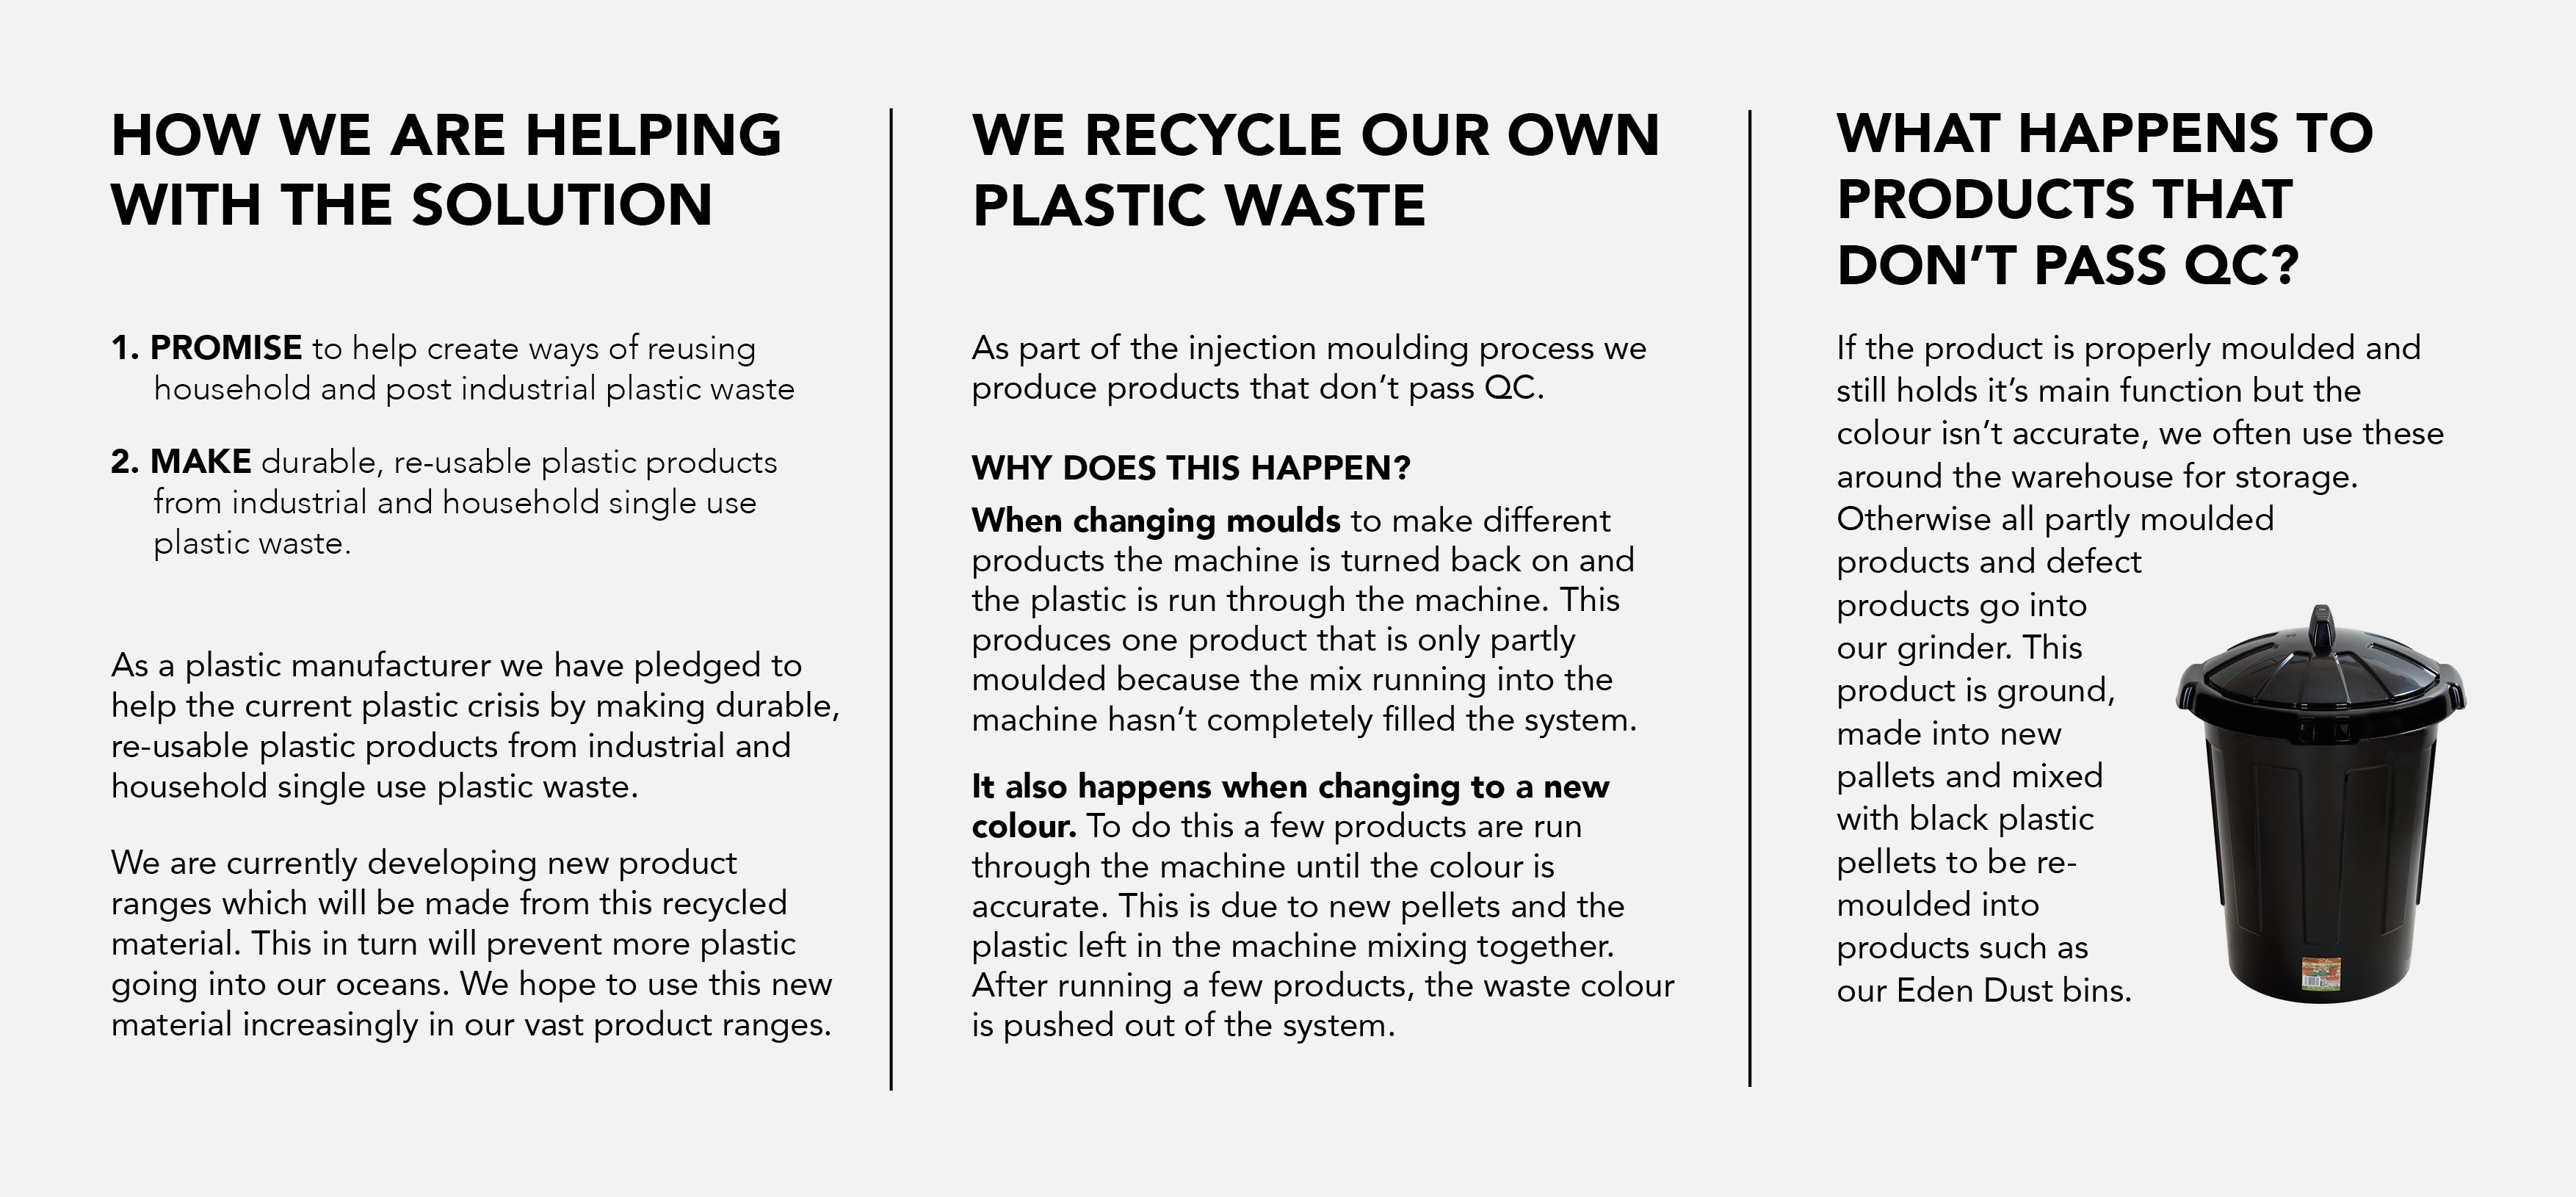 WHAM Recycled Plastic Statement